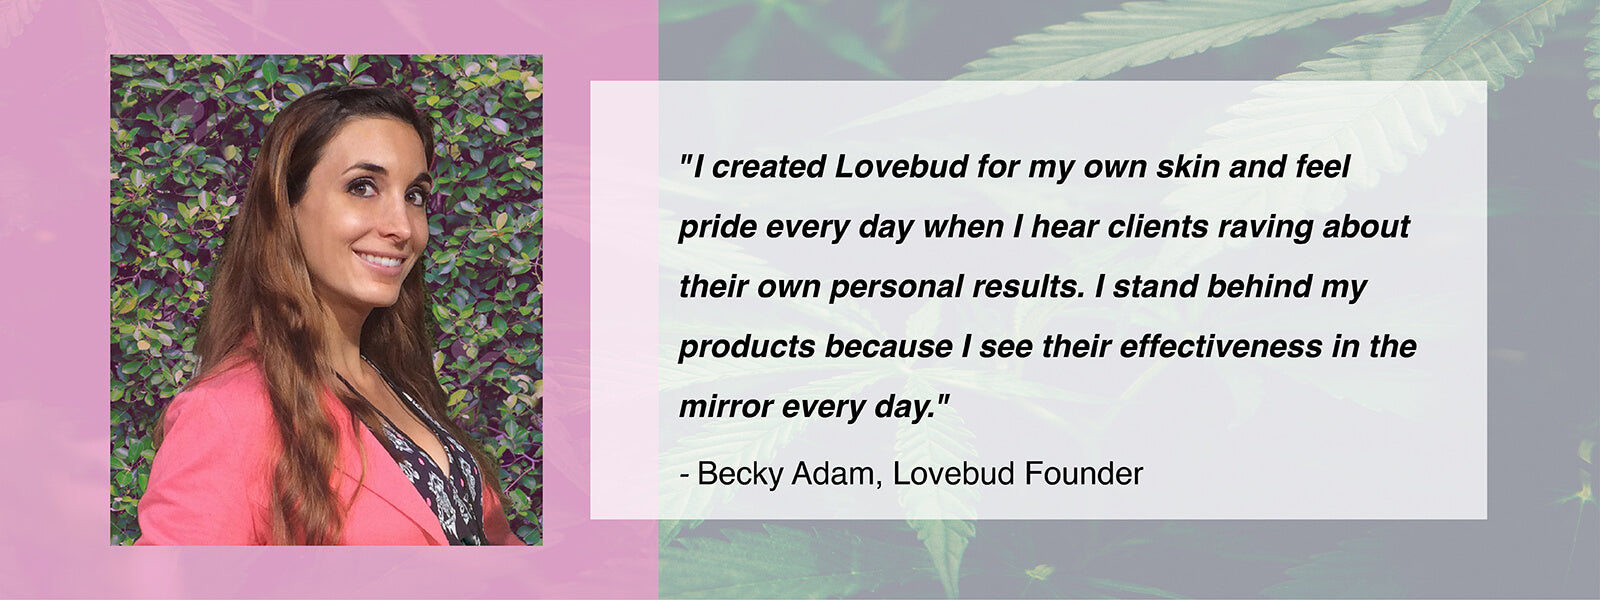 Lovebud Founder Becky Adam